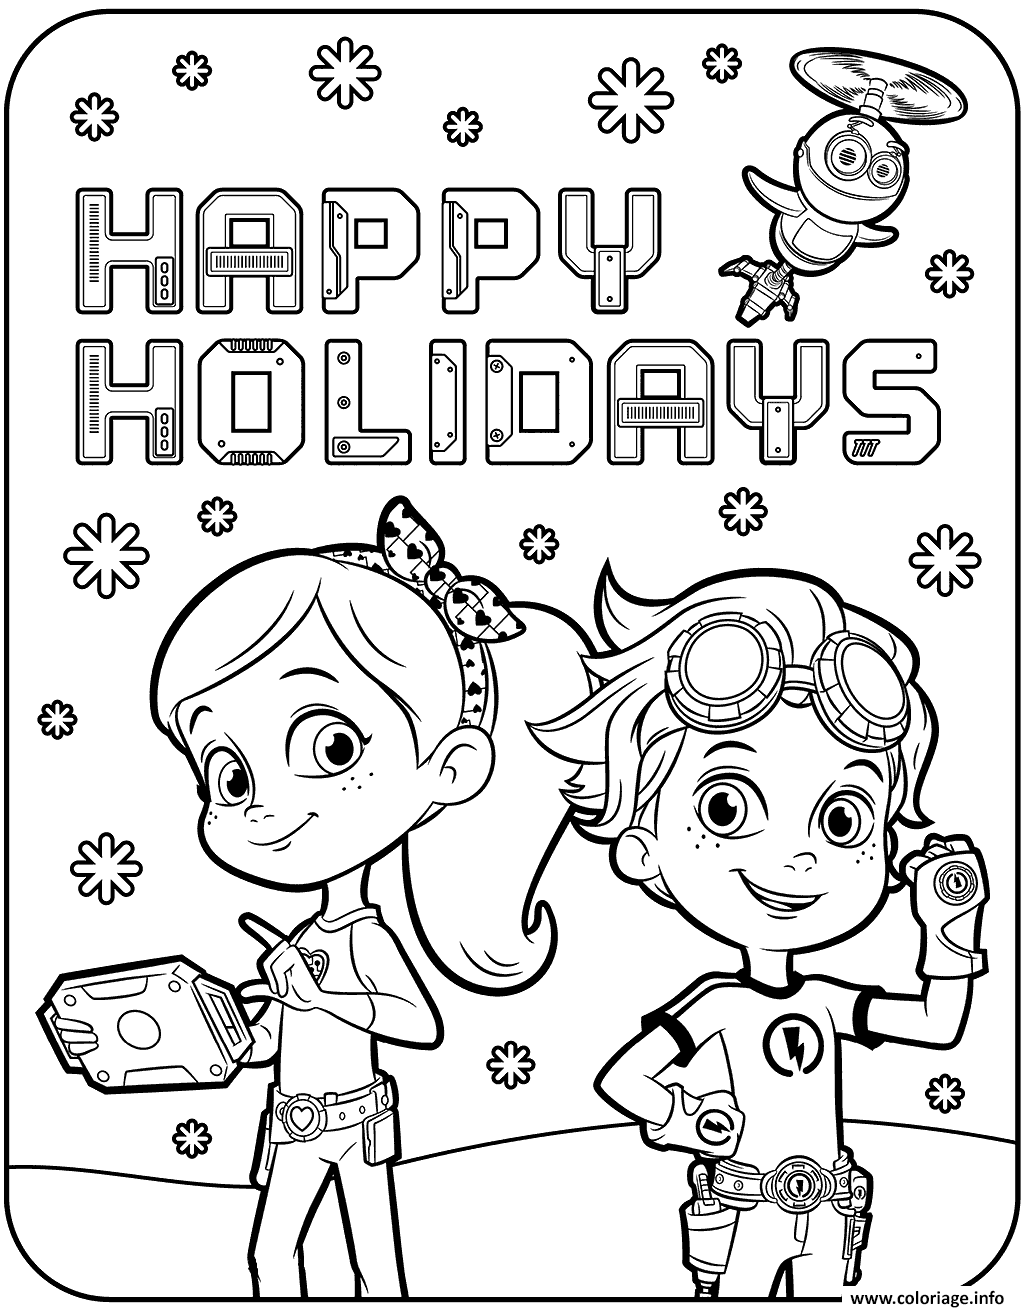 Dessin Happy Holidays with Rusty Rivets Coloriage Gratuit à Imprimer